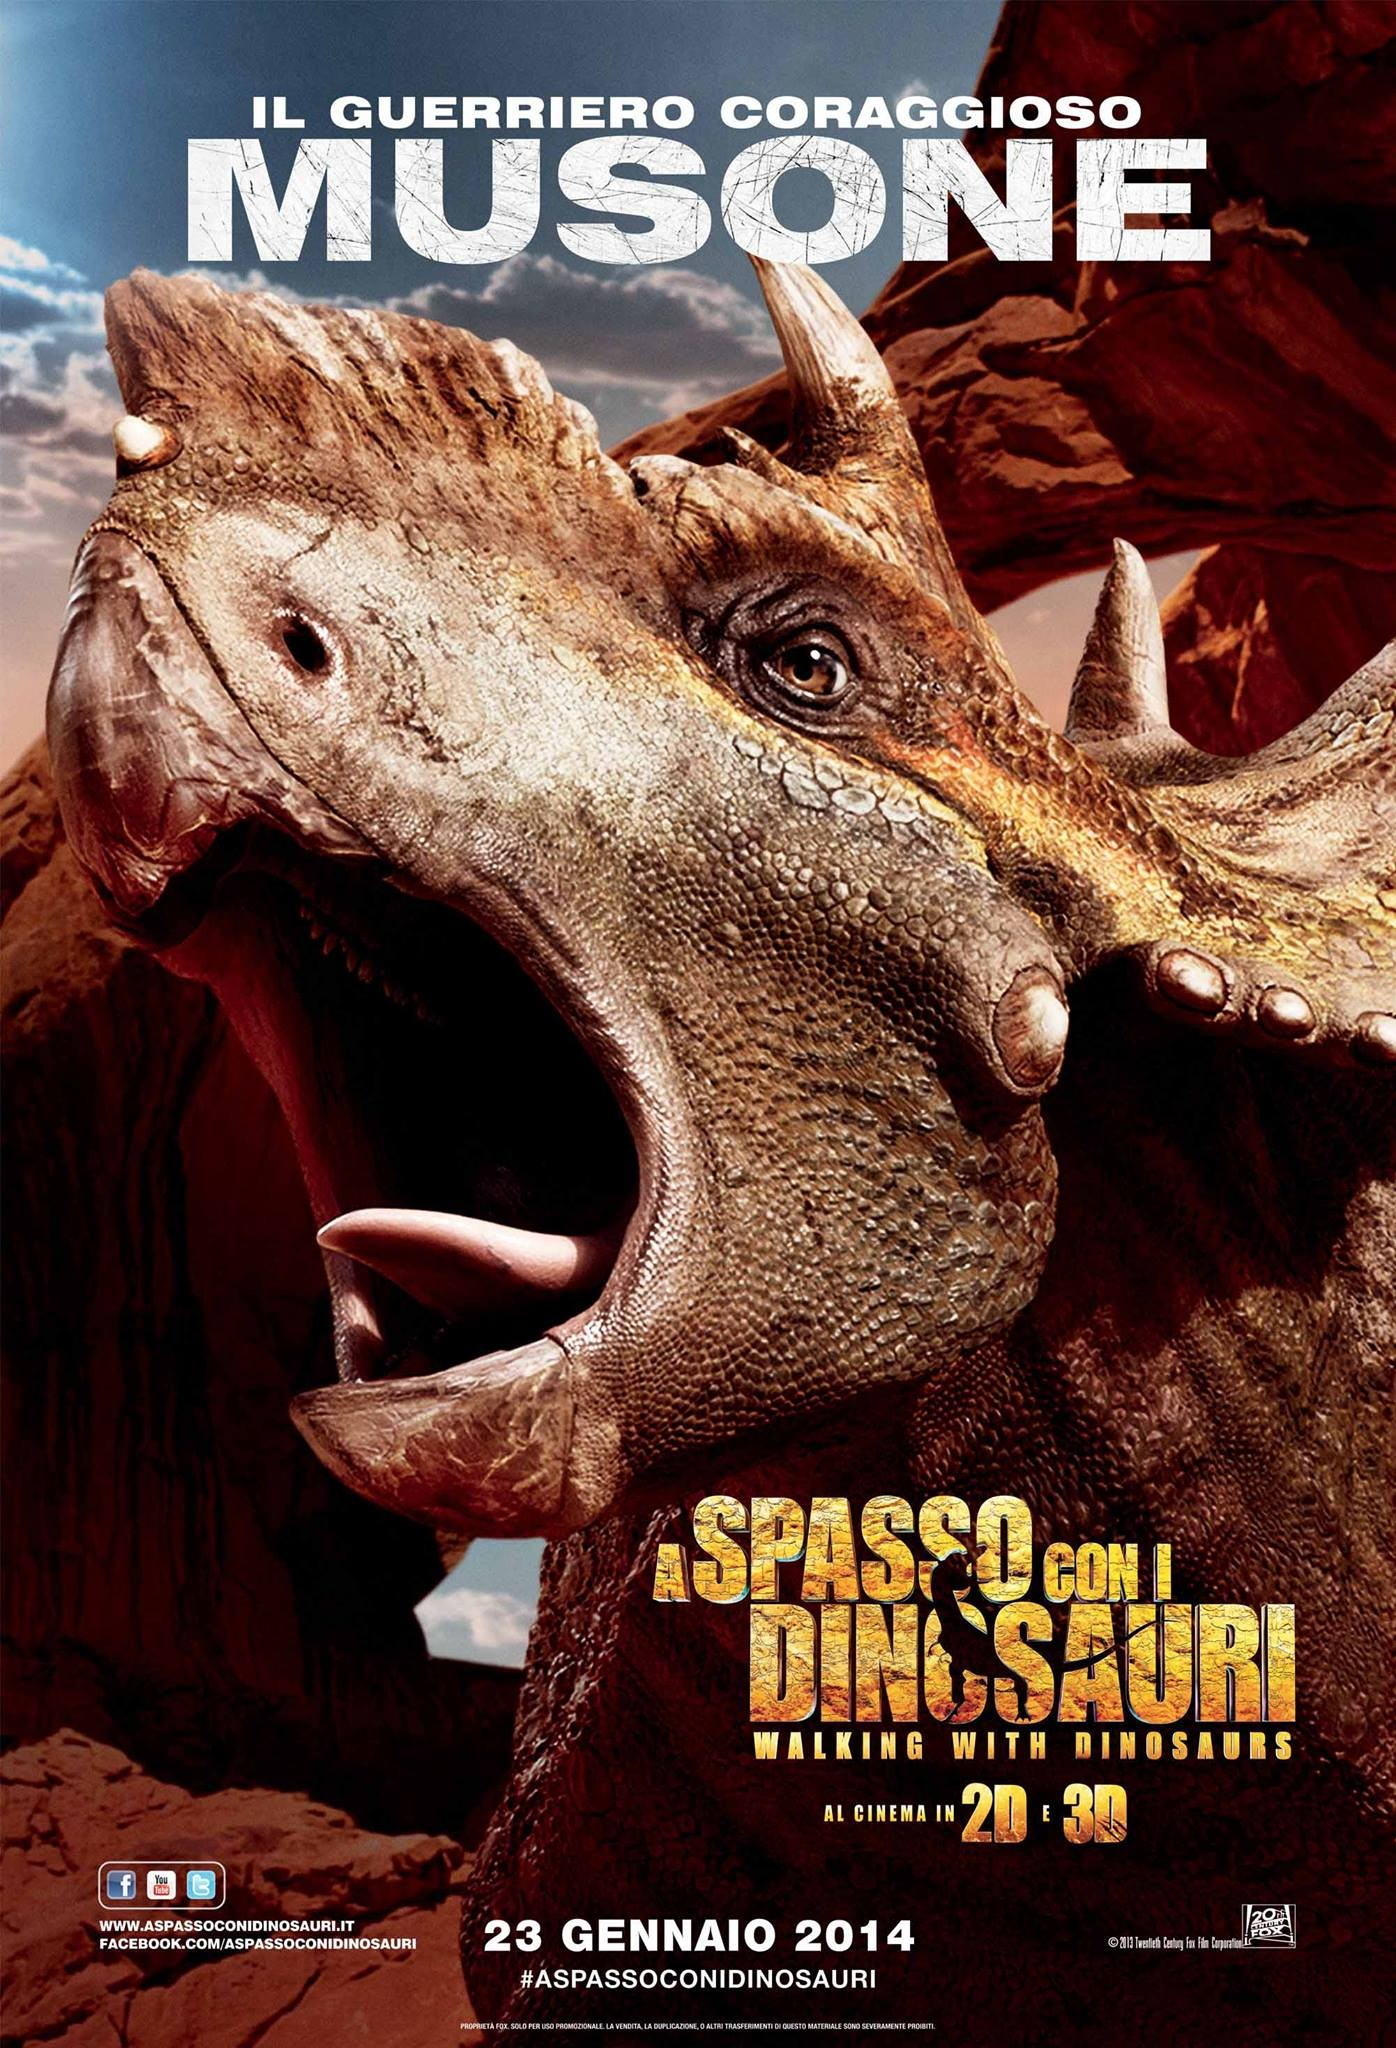 Walking with Dinosaurs-Official Poster Banner PROMO BANNER-27SETEMBRO2013-04